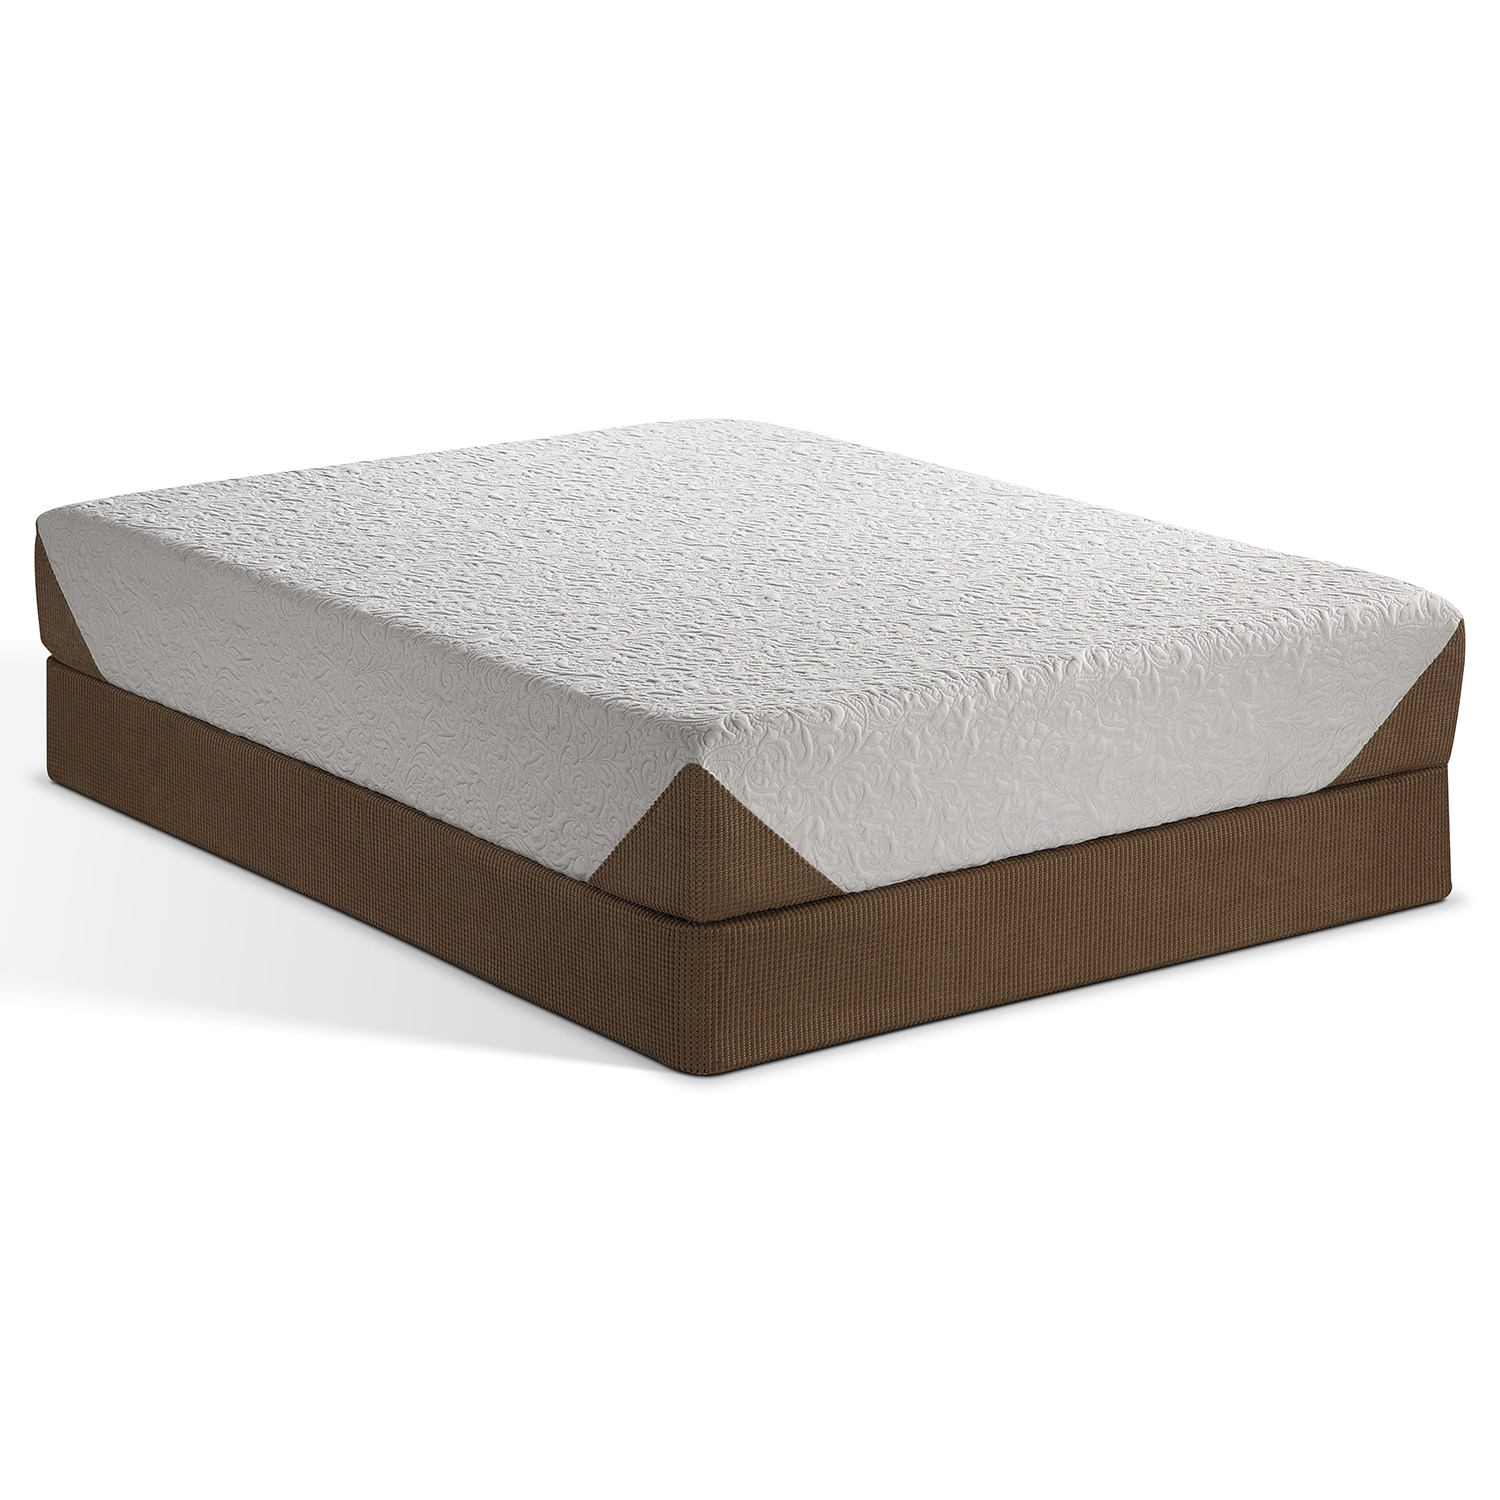 Icomfort queen split flat foundation bed mattress sale Queen mattress sale